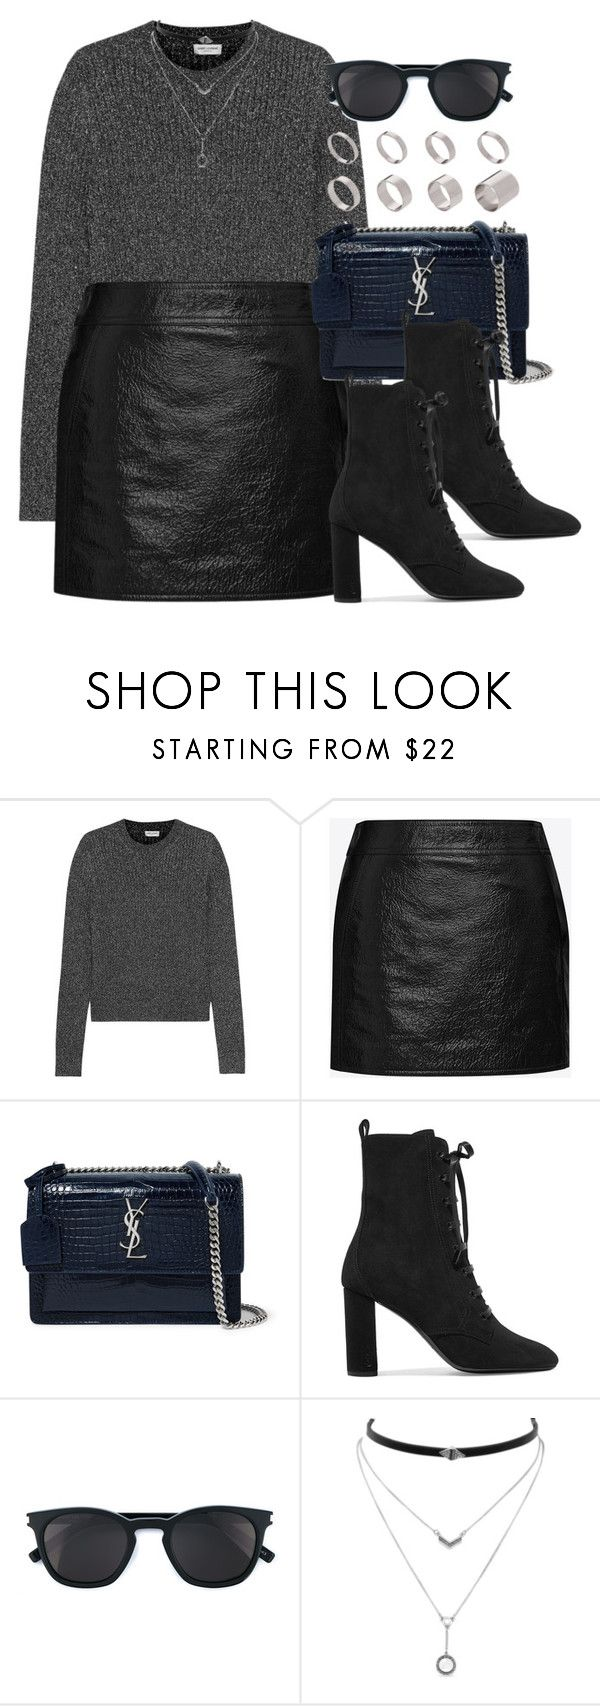 """#13822"" by vany-alvarado ❤ liked on Polyvore featuring Yves Saint Laurent, Jessica Simpson and ASOS"